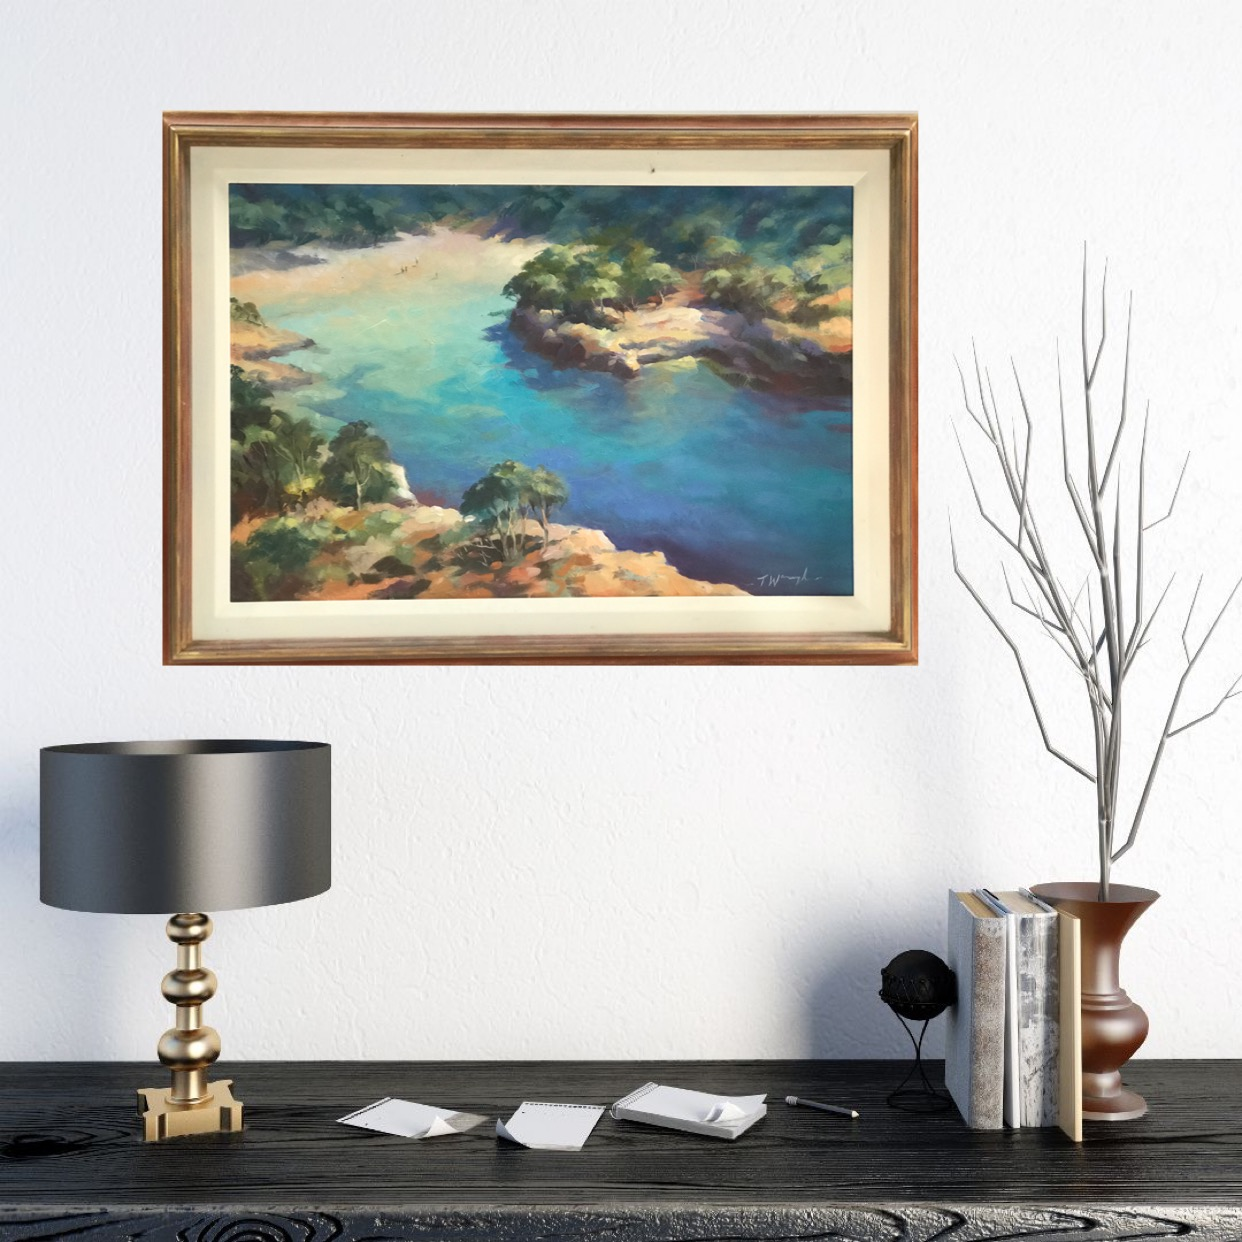 Blue Core, Menorca is an original contemporary oil painting. Waugh brings the vibrant azure blue sea tones of the Mediterranean to life by contrasting them with the neutral tones of the arid landscape.